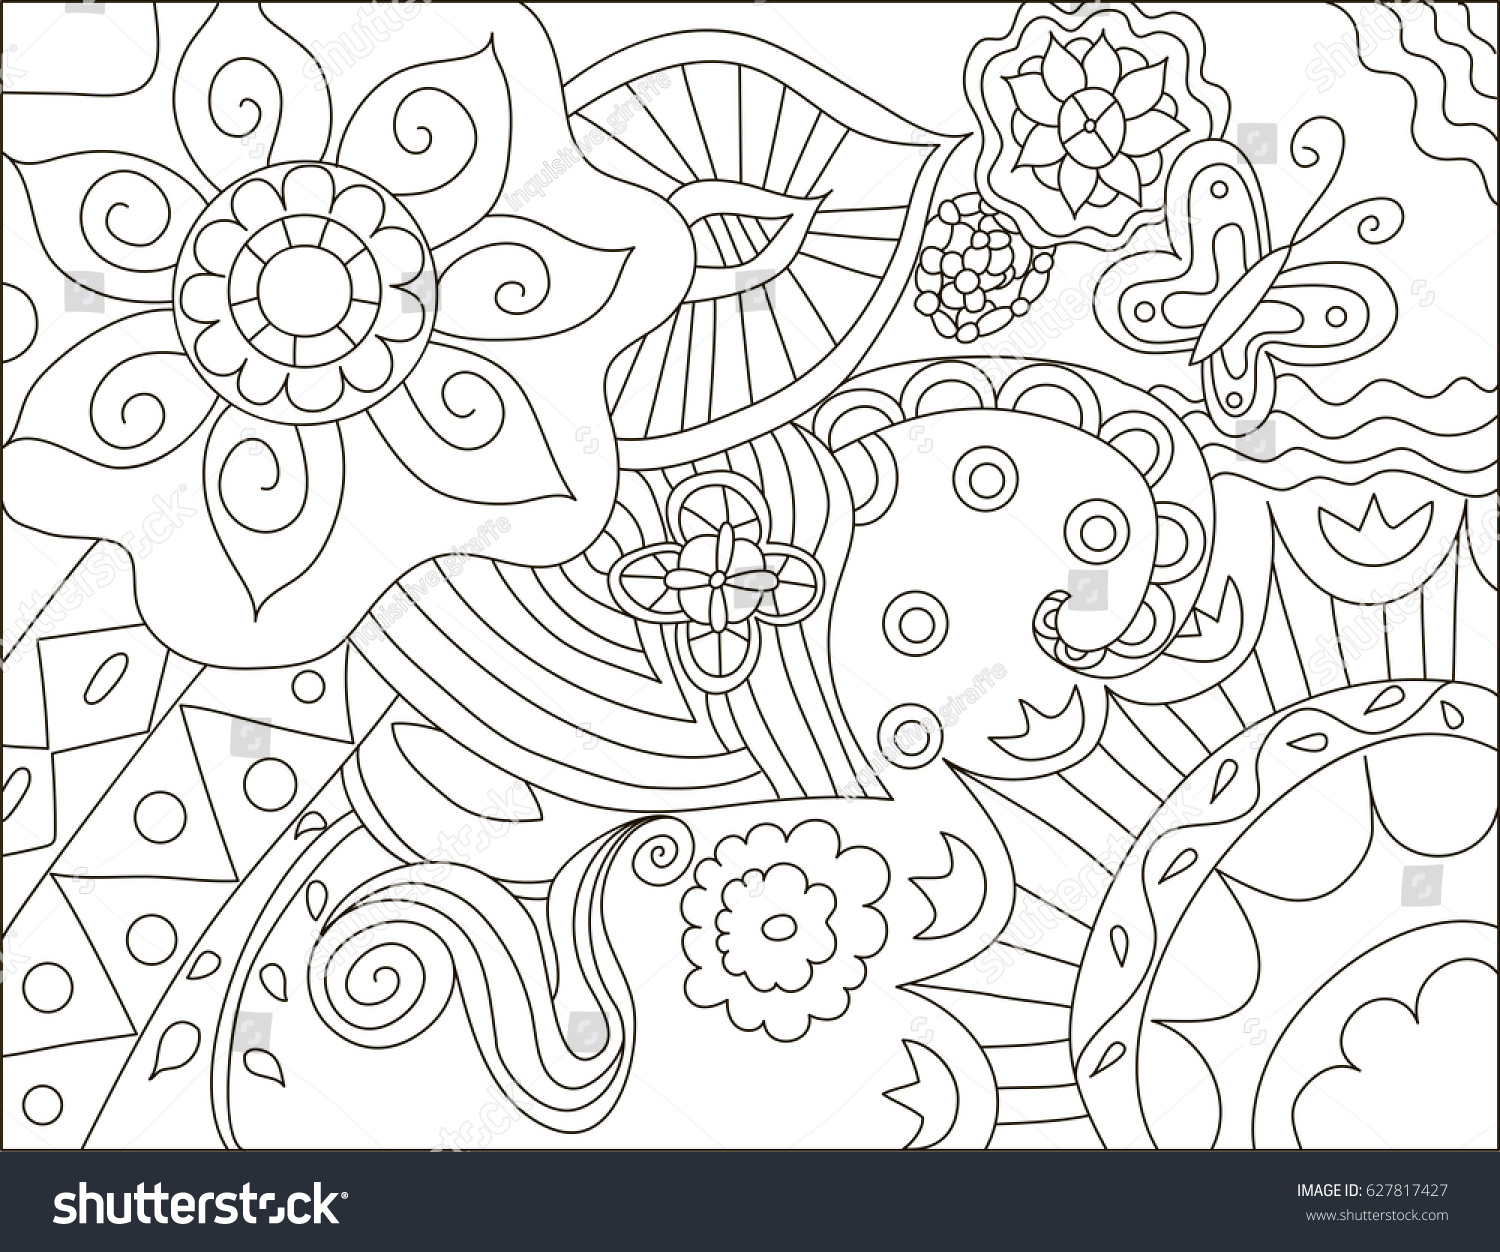 Coloring adults stress - Painting For Adult Anti Stress Coloring Page Book